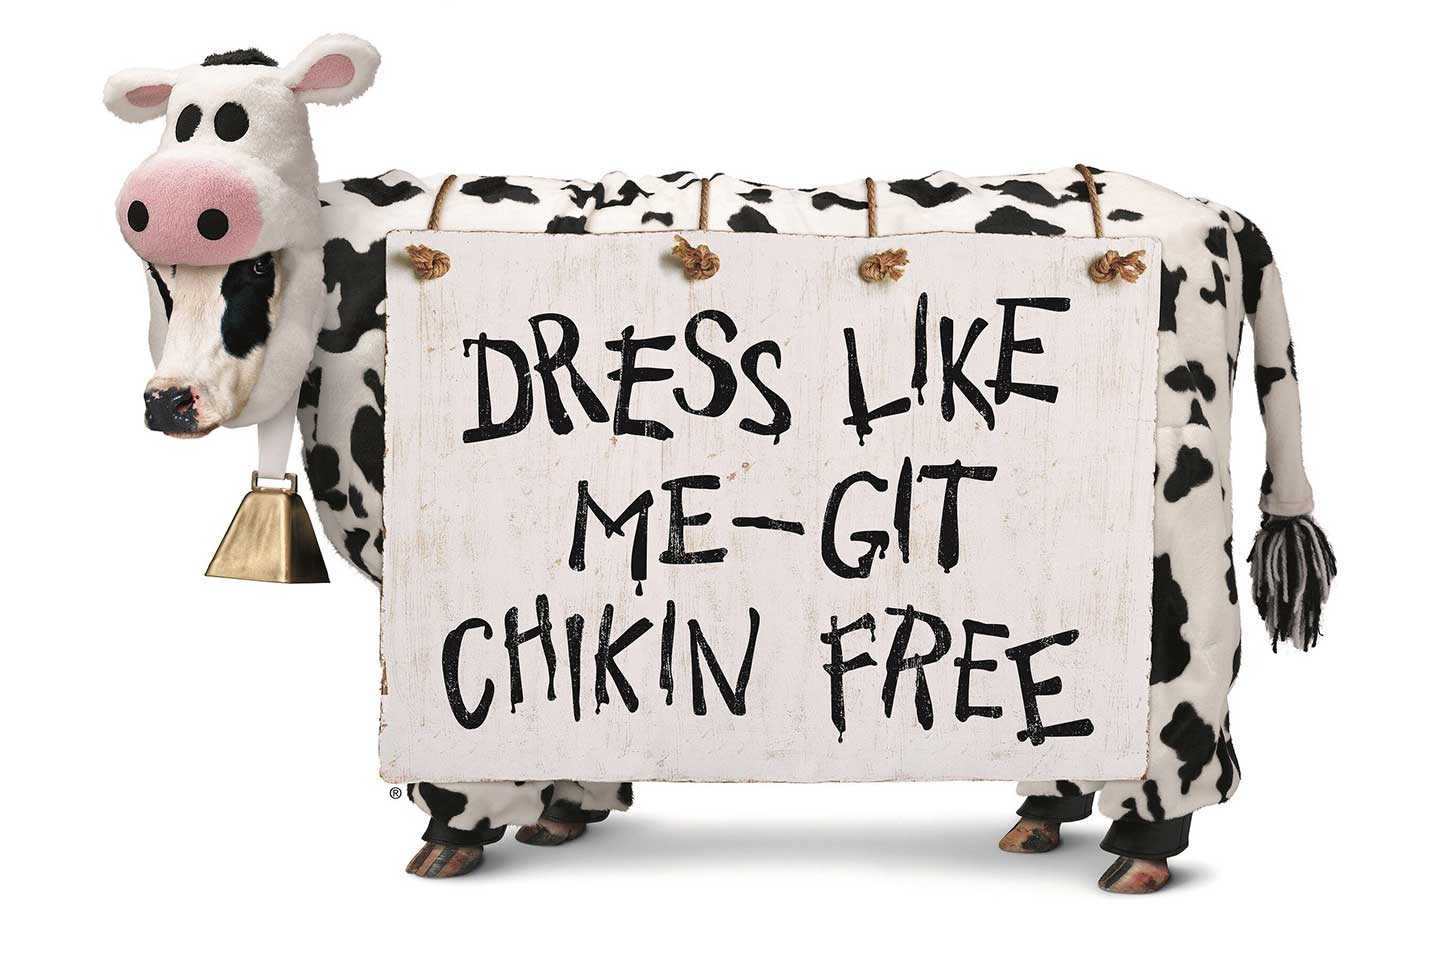 Legal - Terms & Conditions, Privacy Policy | Chick-fil-A